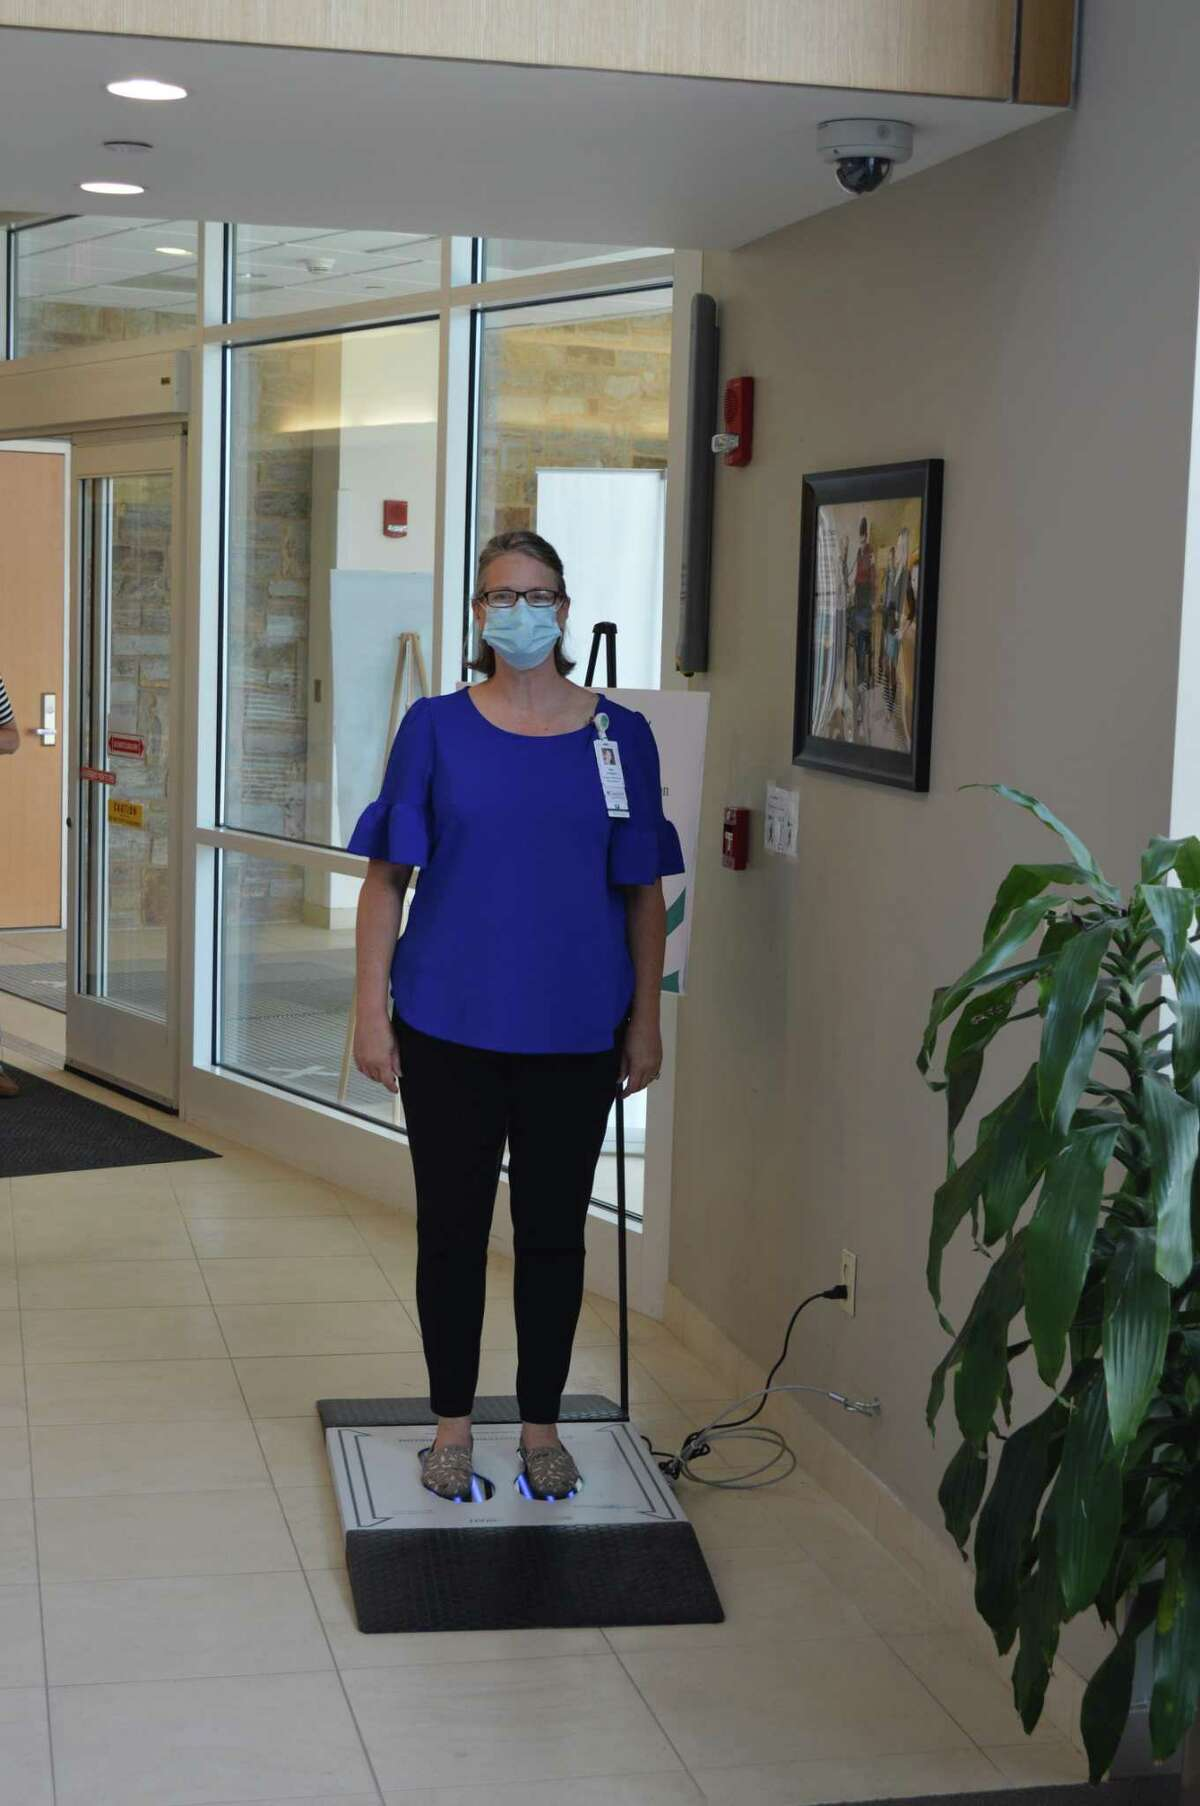 Gaylord Specialty Healthcare announced this week that it had begun using a new technology from Patho3Gen Solutions to disinfect shoes during the pandemic. Here, Kristelle Caslangen, RN, uses the device.